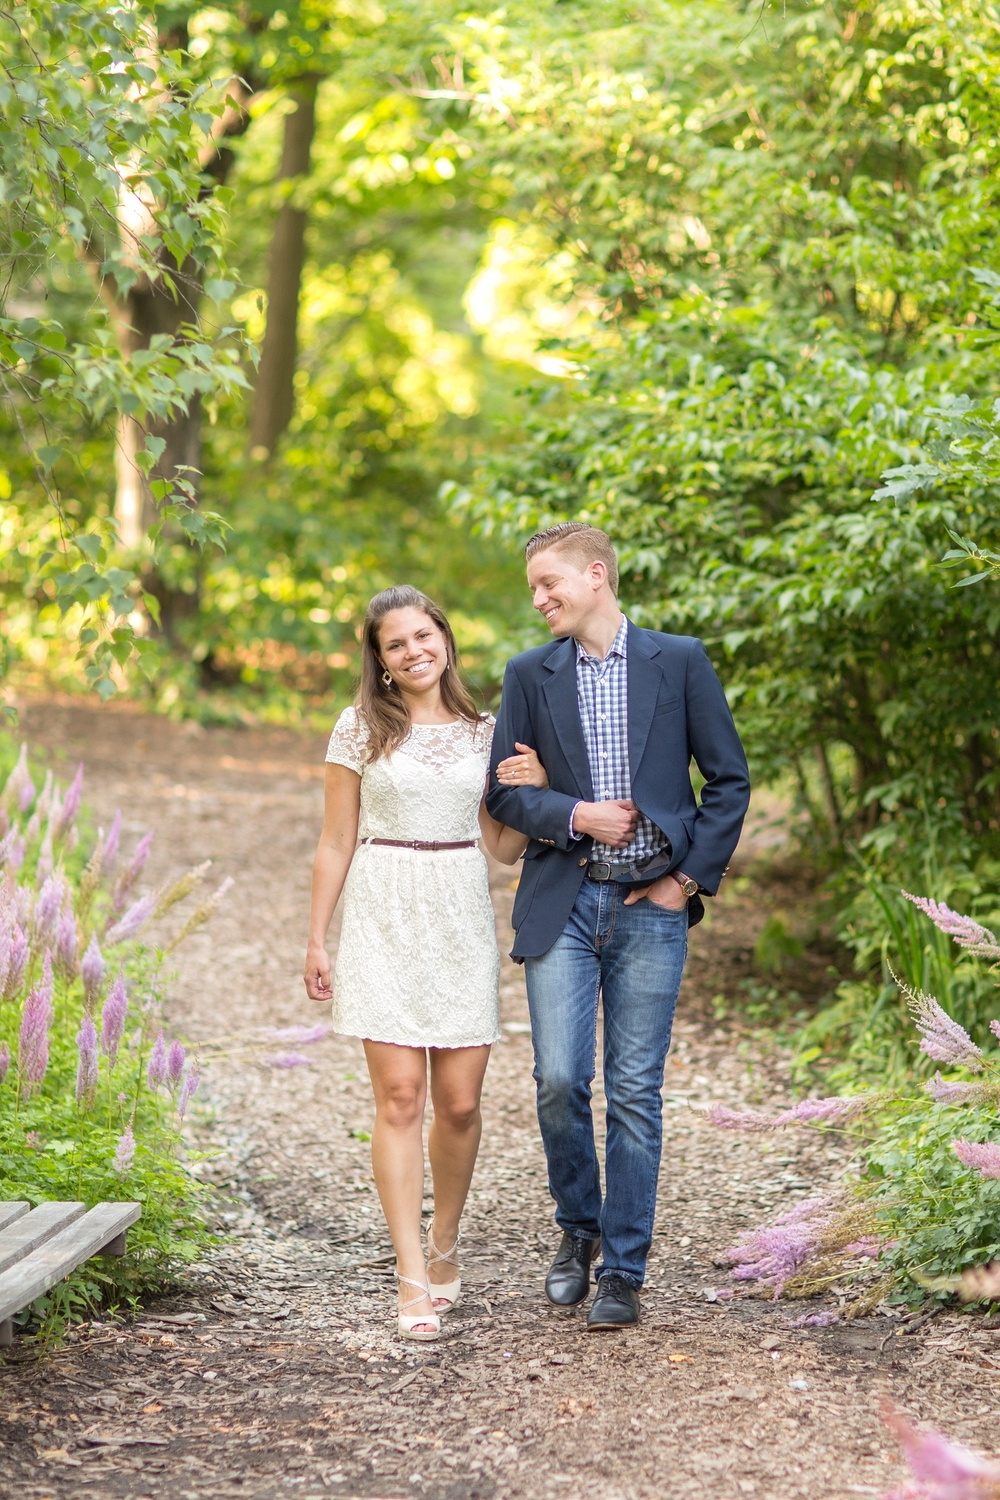 Clare & Nick Engagement-103_anna grace photography brookside gardens maryland engagement photographer photo.jpg